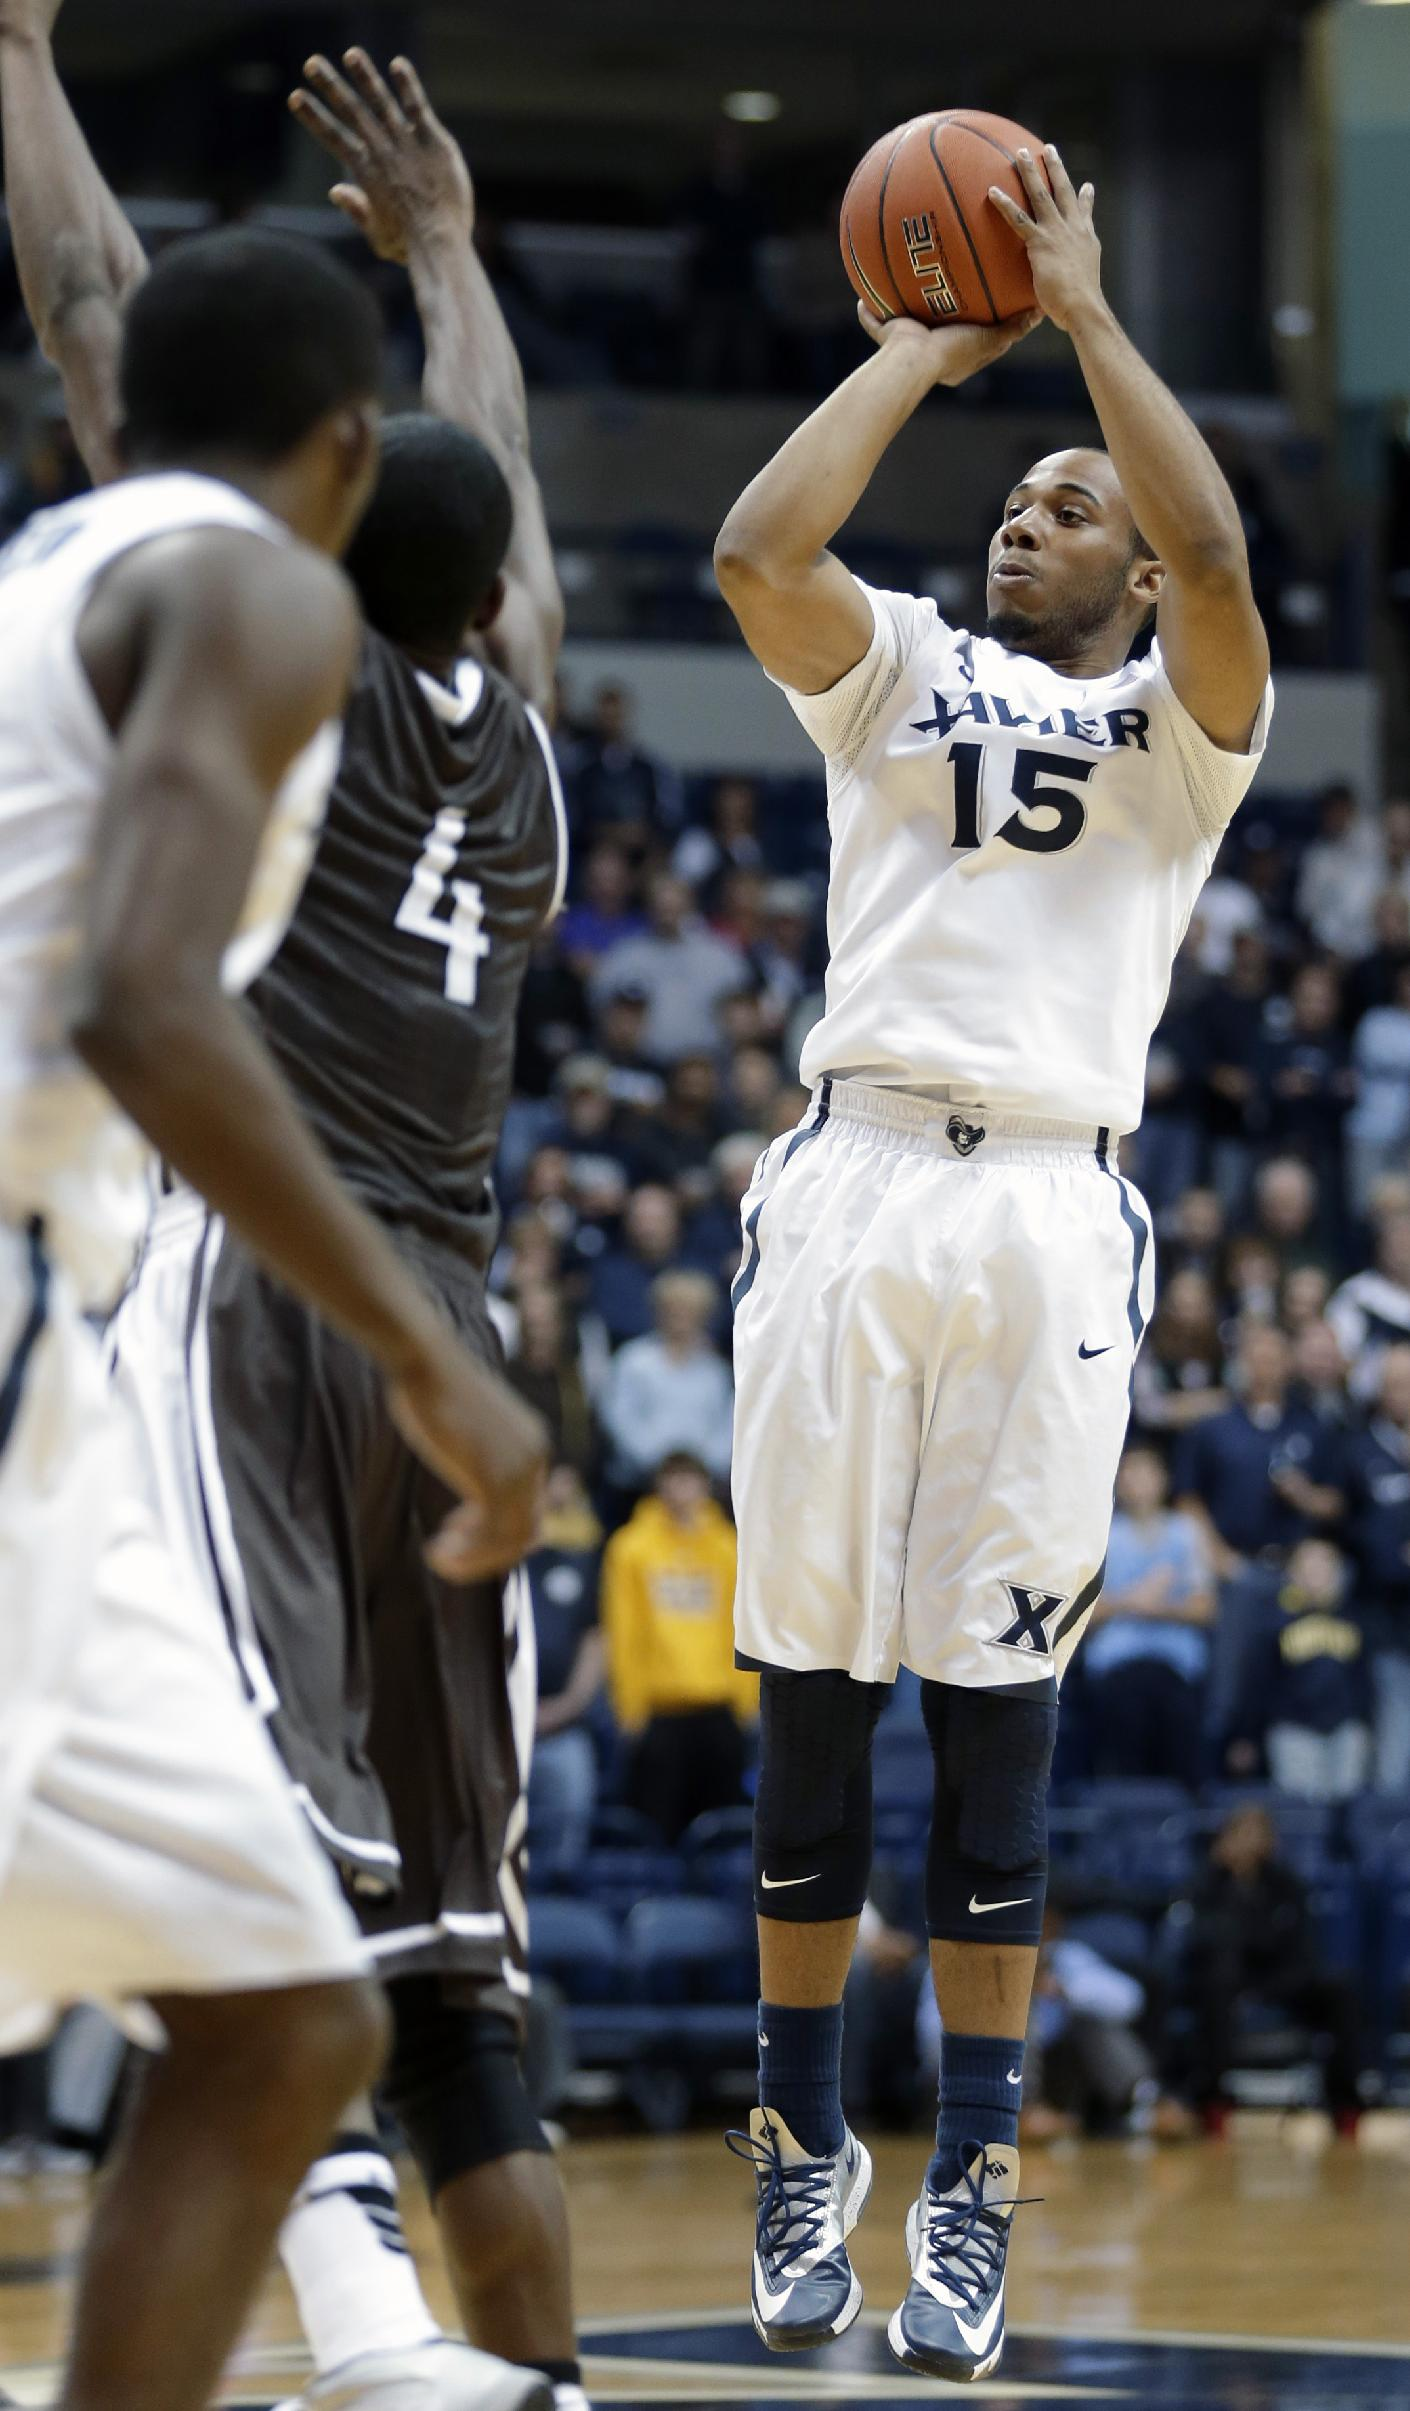 Xavier guard Myles Davis (15) shoots against Quincy in the first half of an NCAA exhibition college basketball game, Saturday, Nov. 2, 2013, in Cincinnati